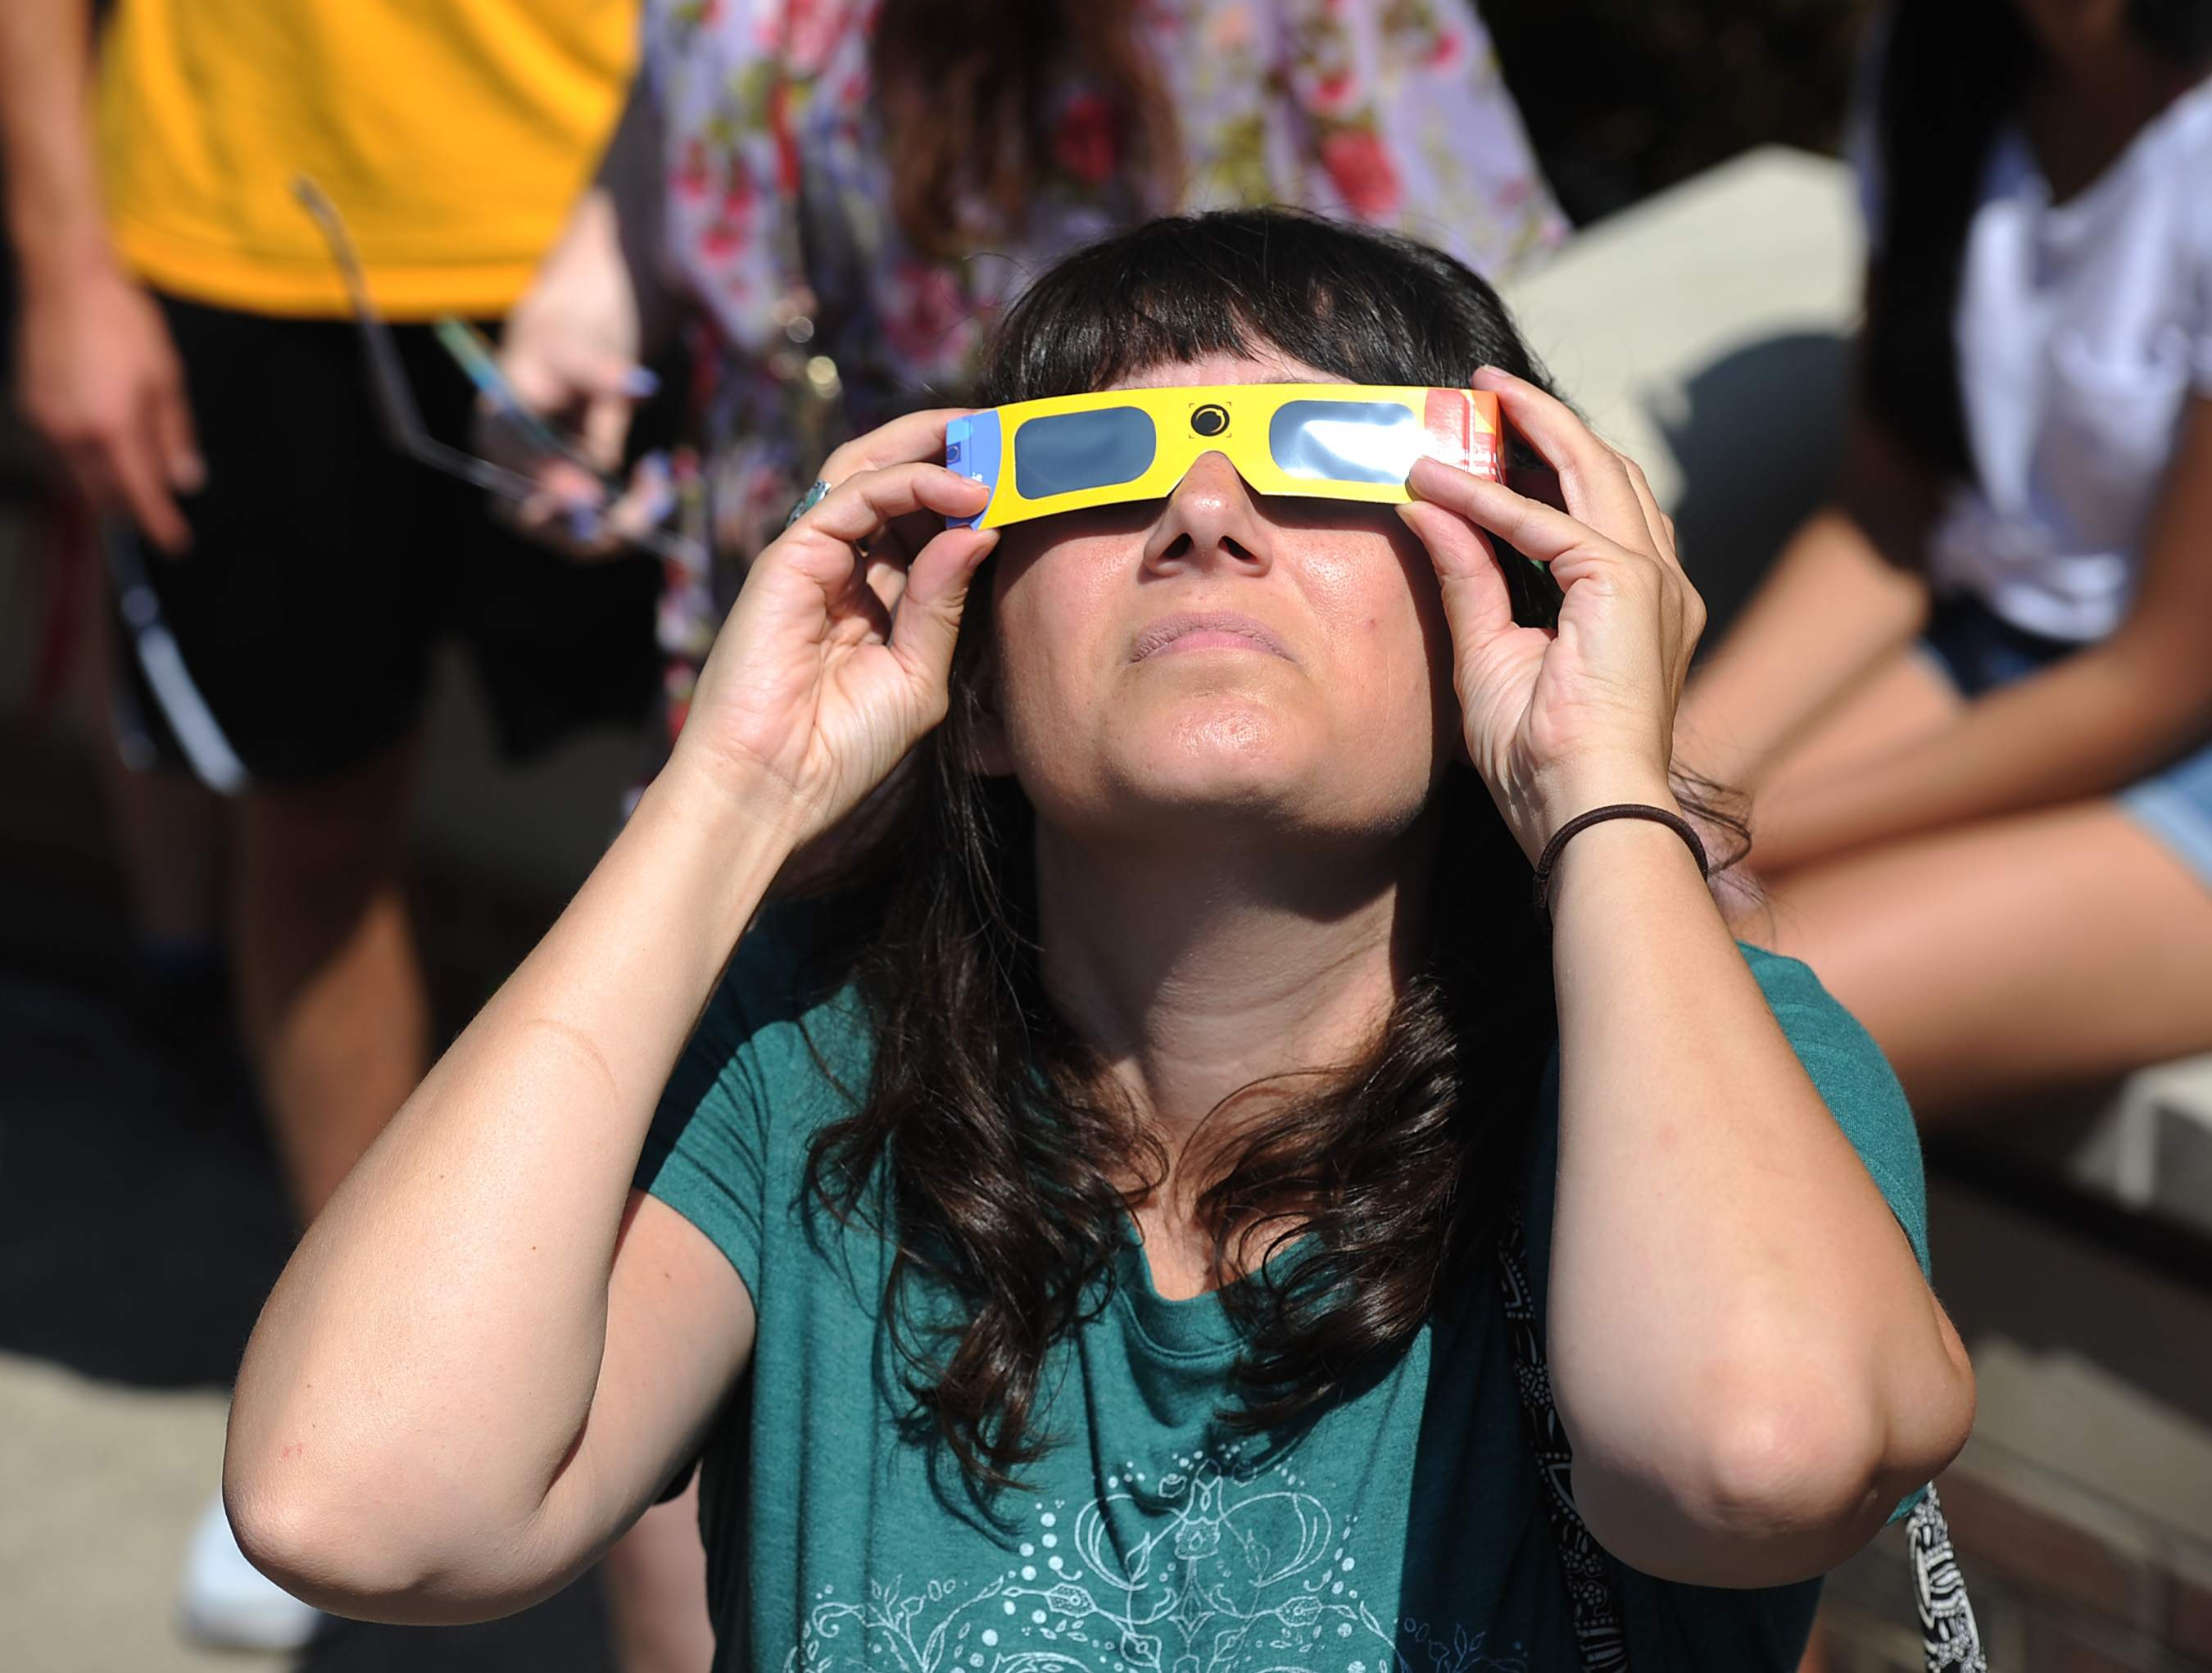 Shannon Fera of Meadville views the solar eclipse Aug. 21 at an eclipse-viewing party held at Penn State Behrend in Harborcreek Township. 'It's a rare phenomenon of nature,' said Fera. 'And we're lucky to be here for it.' Hundreds turned out for the event, which featured telescopes fitted with solar filters available for viewing the partial eclipse. [CHRISTOPHER MILLETTE/ERIE TIMES-NEWS]